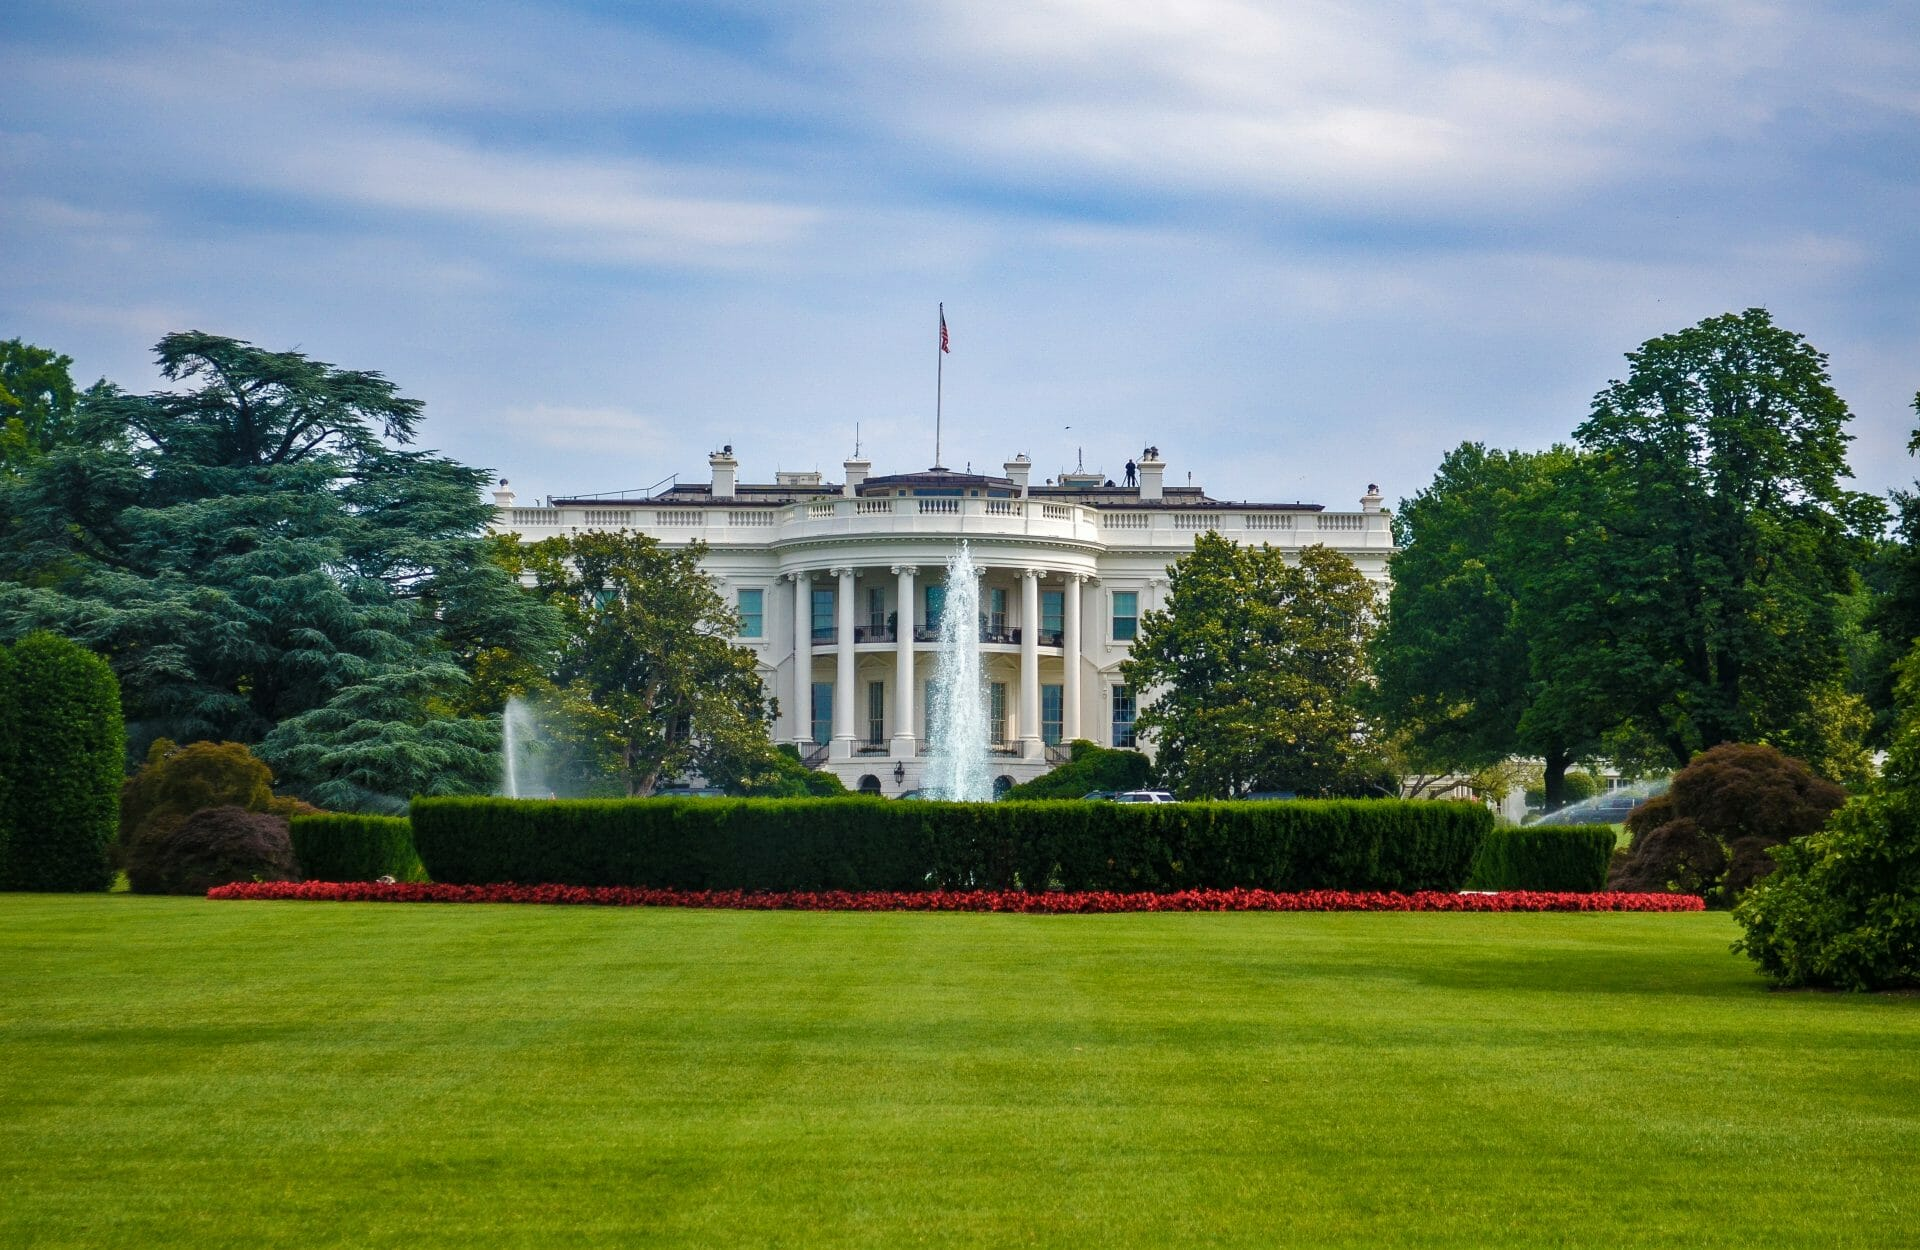 Picture of The White House for Real Estate News for Investors Podcast Episode #711